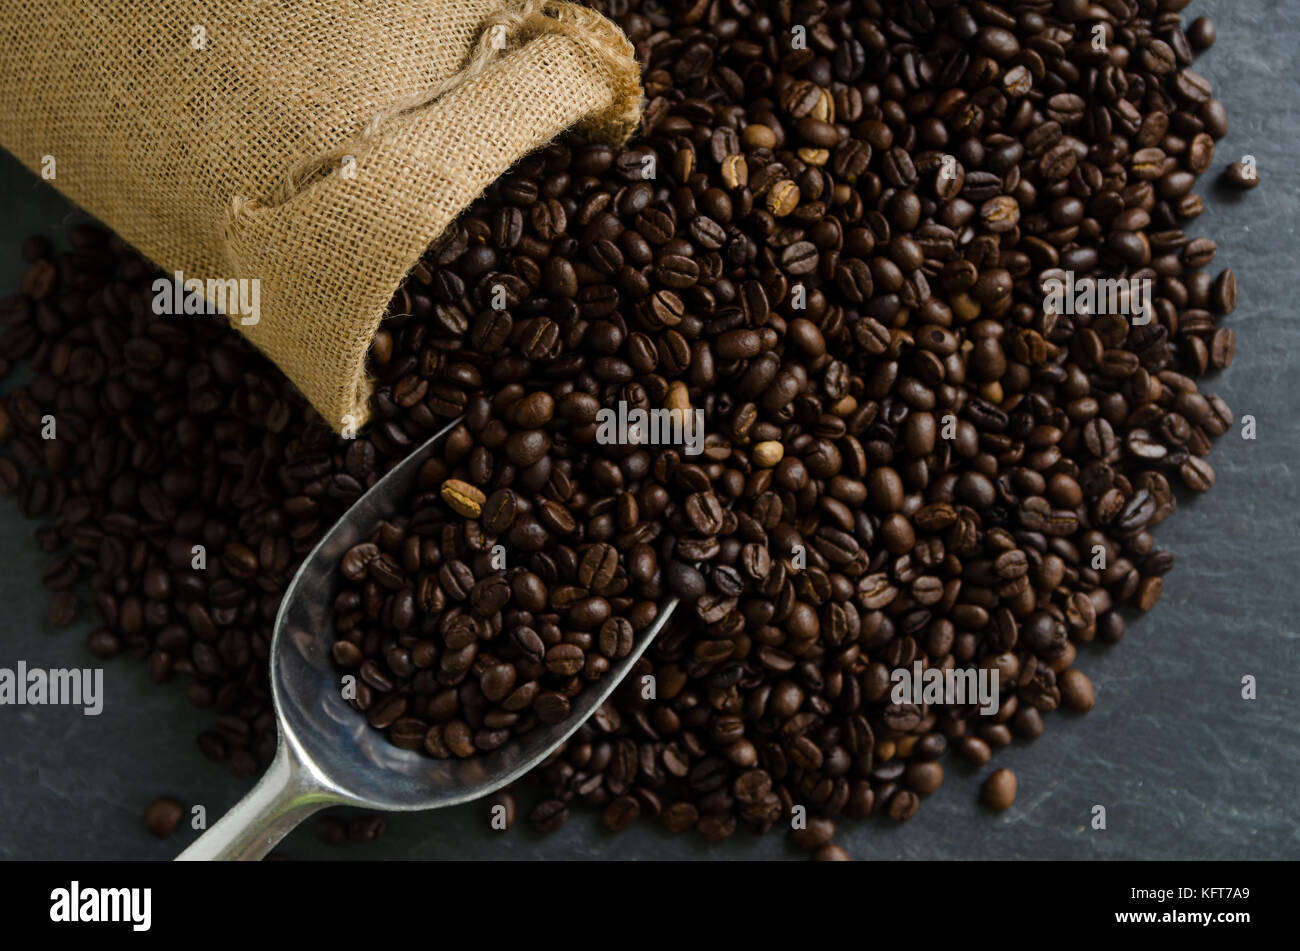 Coffee cup and roasted coffee beans in burlap sack bag with leaves on black granite background - Stock Image